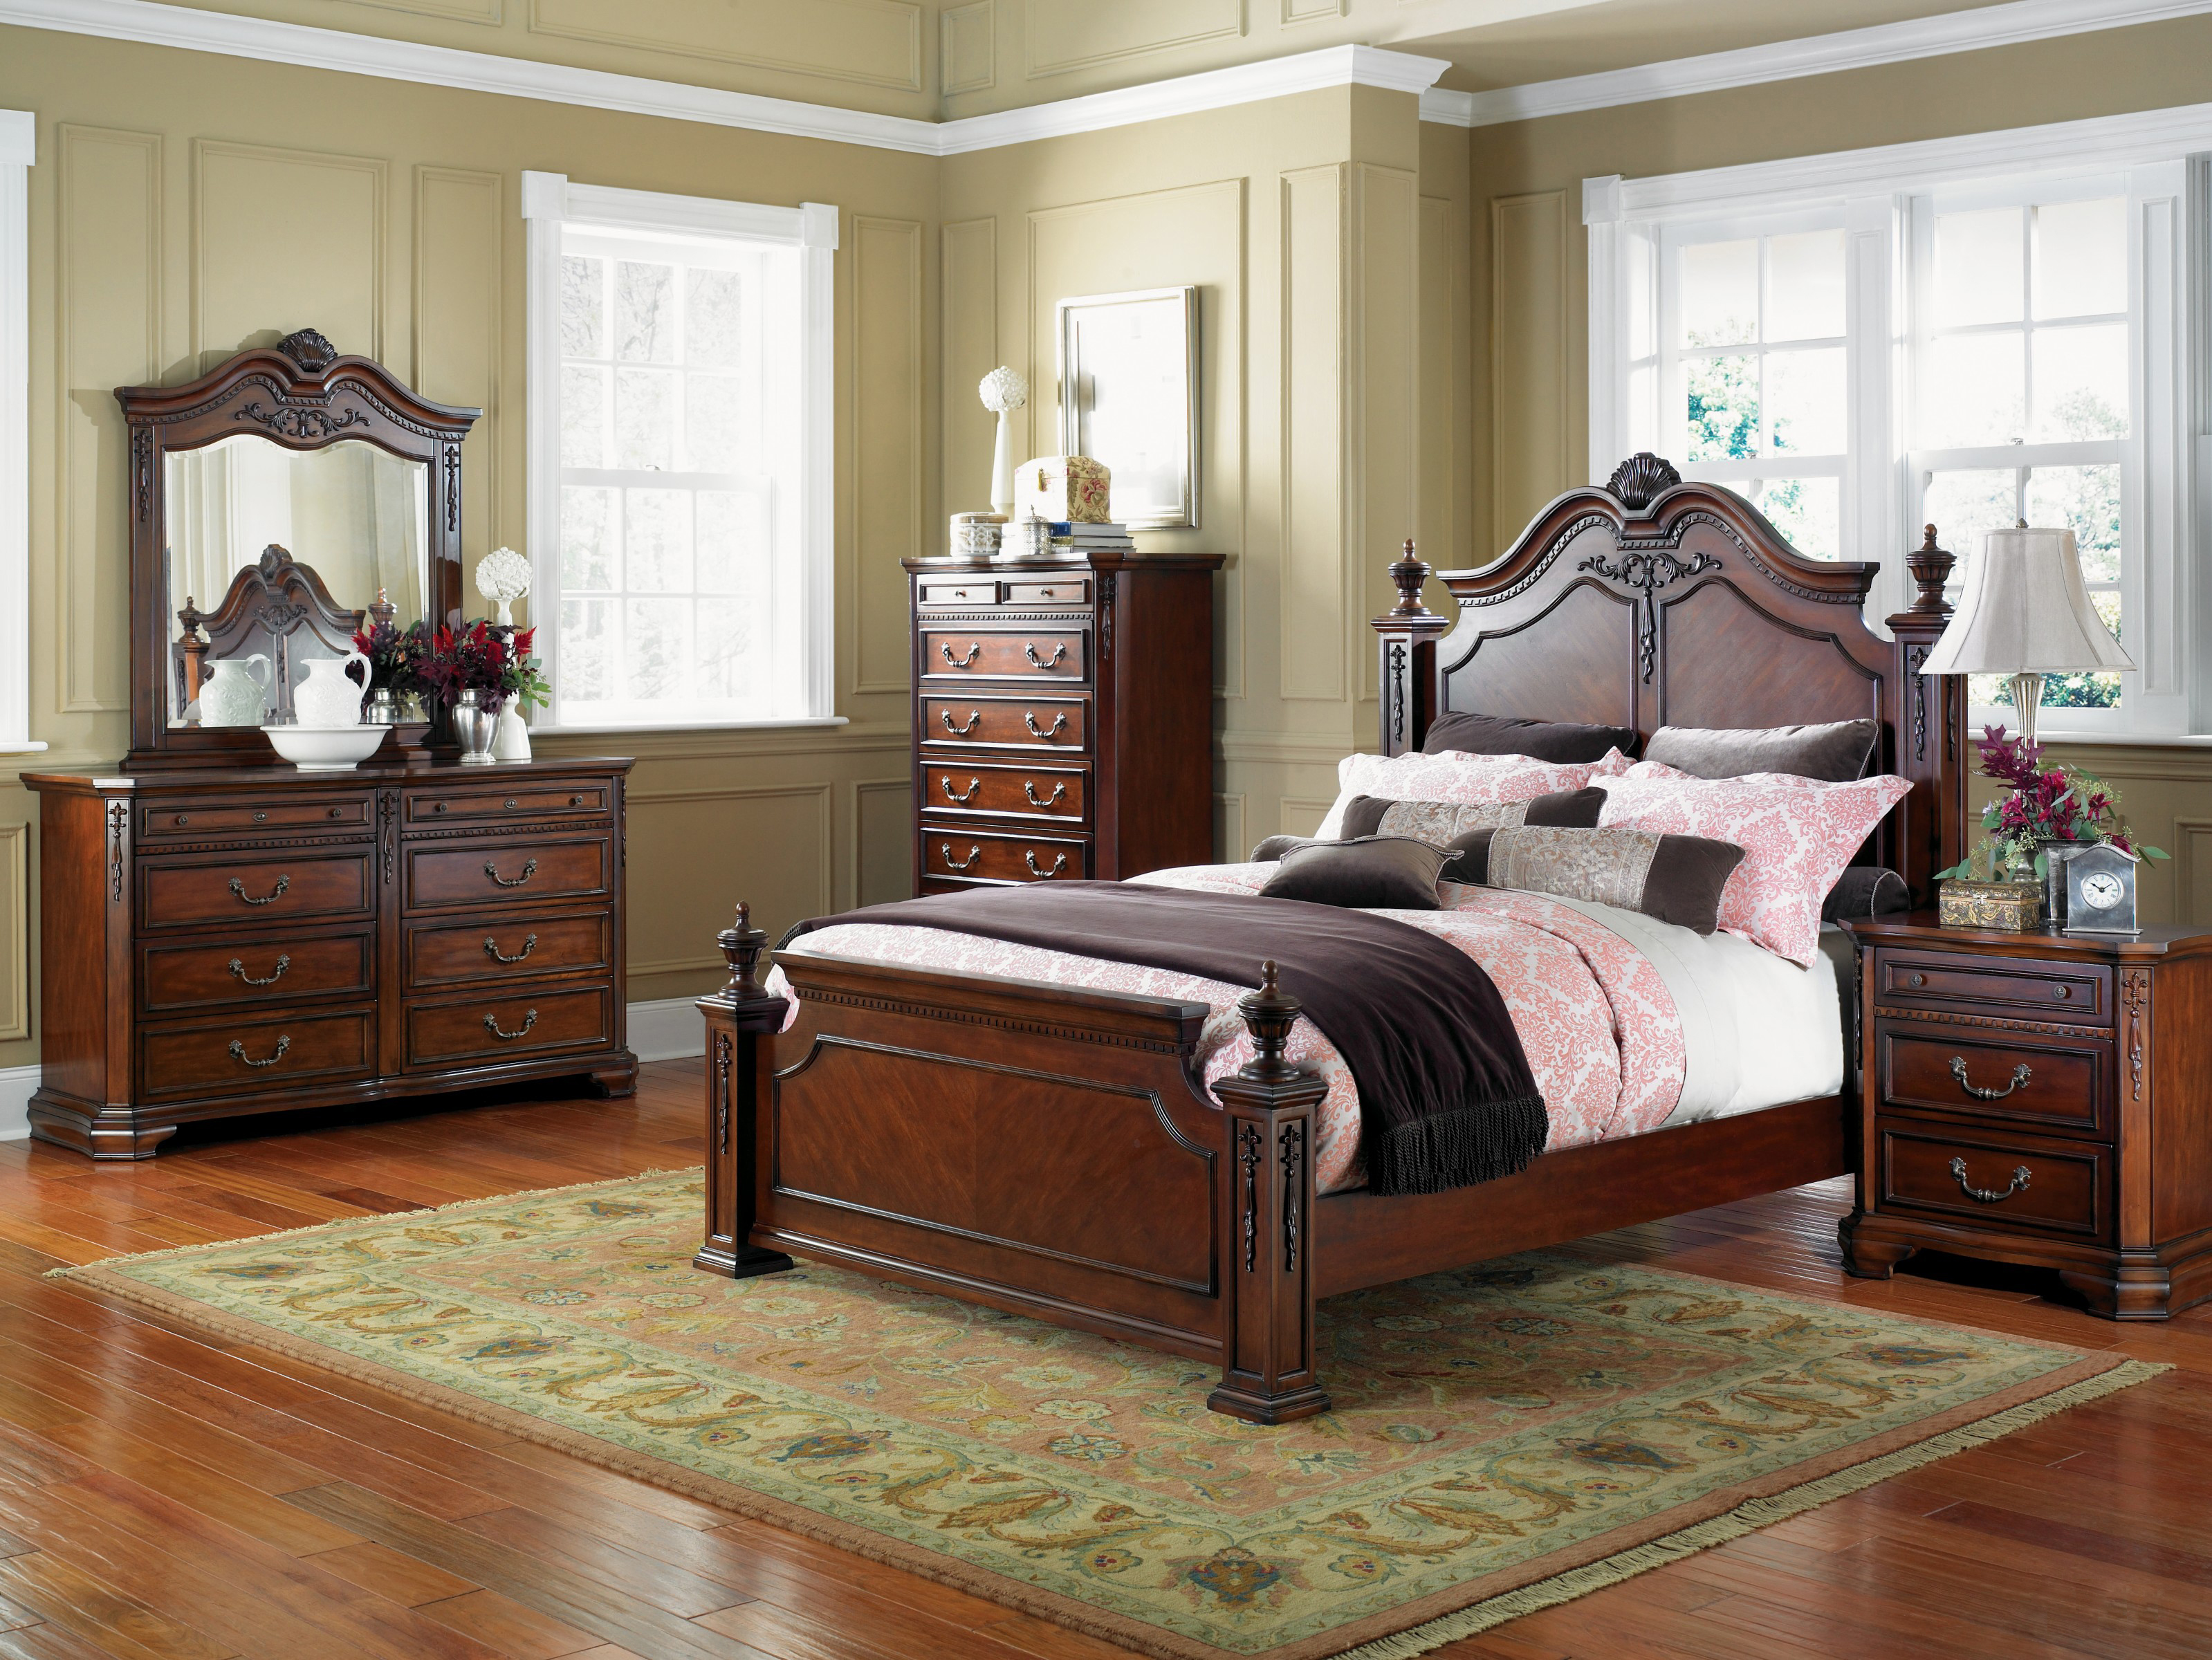 Impressive Bedroom Furniture 3198 x 2400 · 3937 kB · jpeg